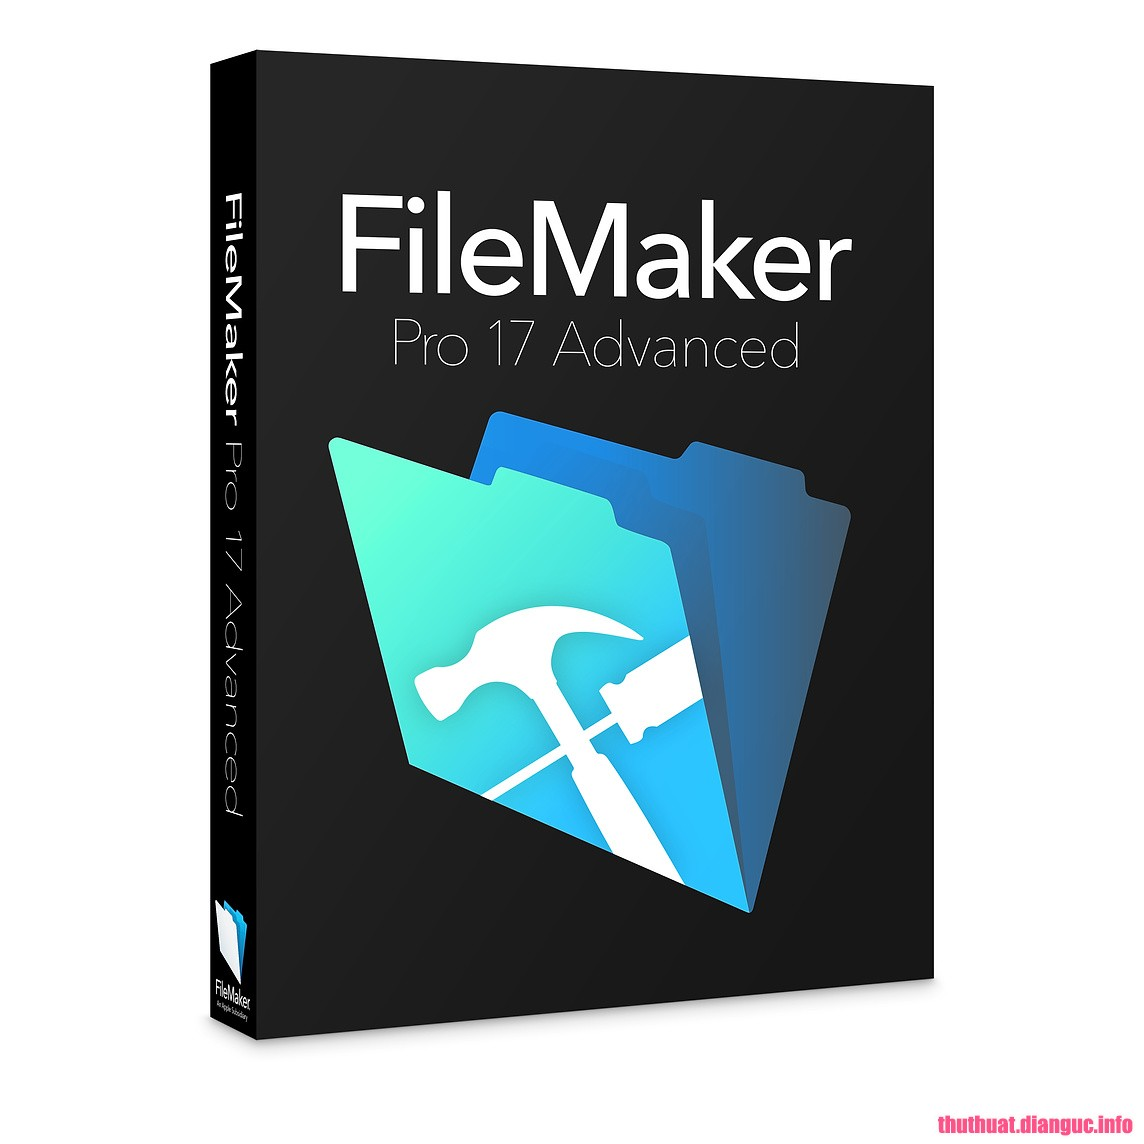 Download FileMaker Pro 17 Advanced 17.0.5.502 Full Crack, ứng dụng cơ sở dữ liệu nền tảng mạnh mẽ, FileMaker Pro 17 Advanced, FileMaker Pro 17 Advanced free download, FileMaker Pro 17 Advanced full key